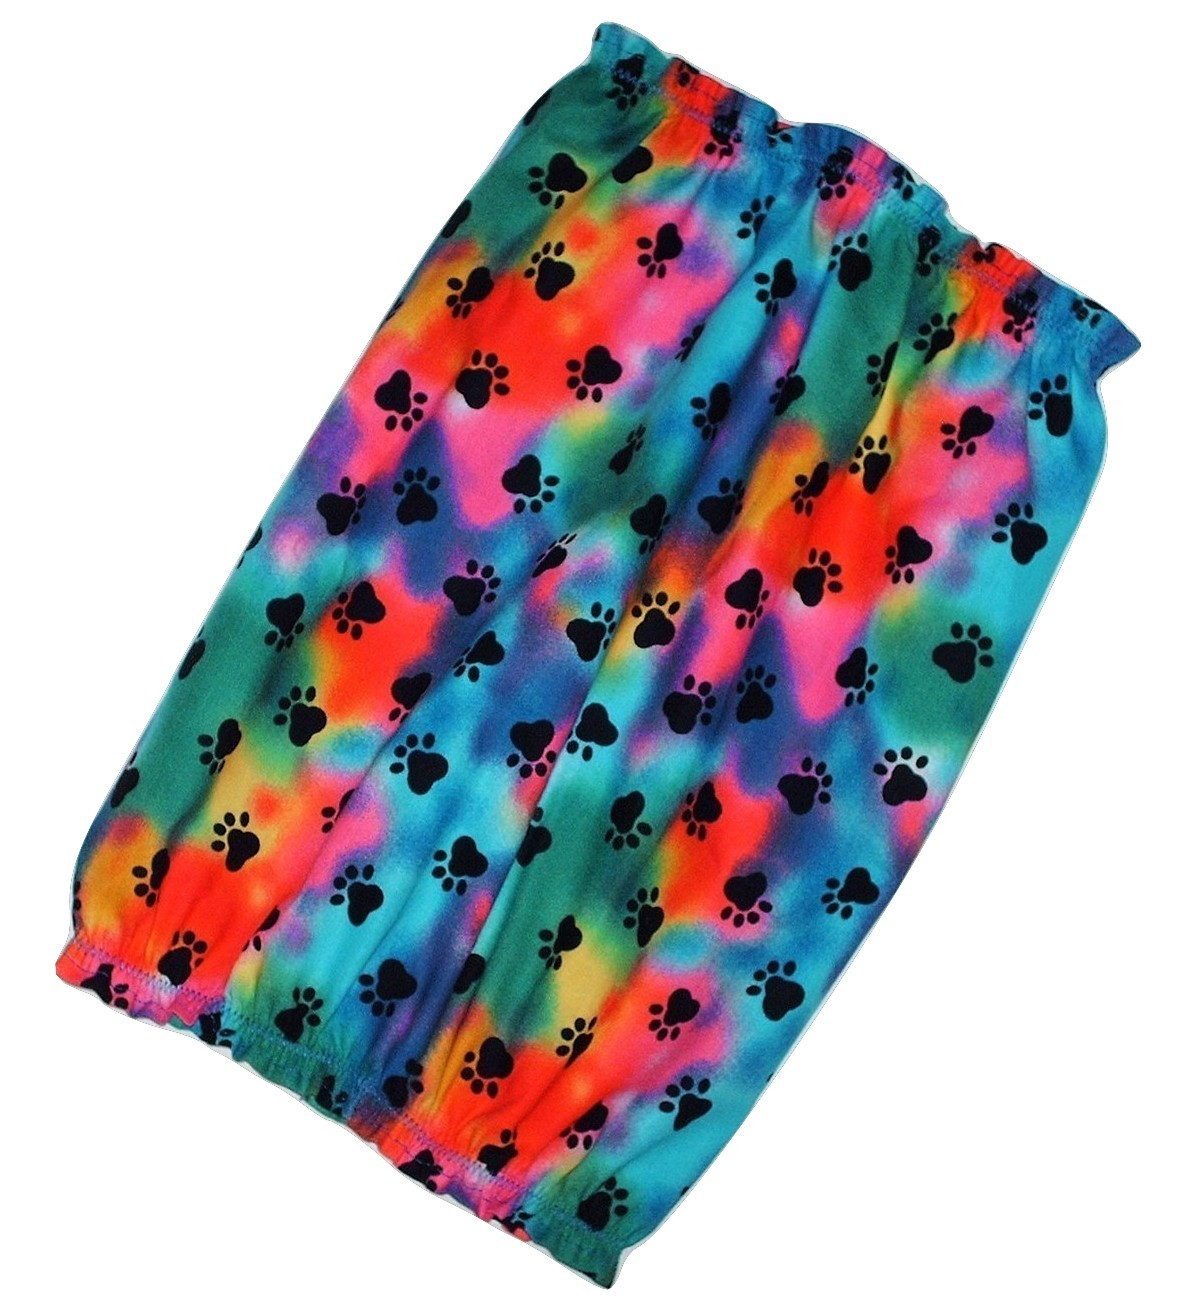 Dog Snood Rainbow Tie Dye Black Paw Prints Cotton by Howlin Hounds Size Large image 2